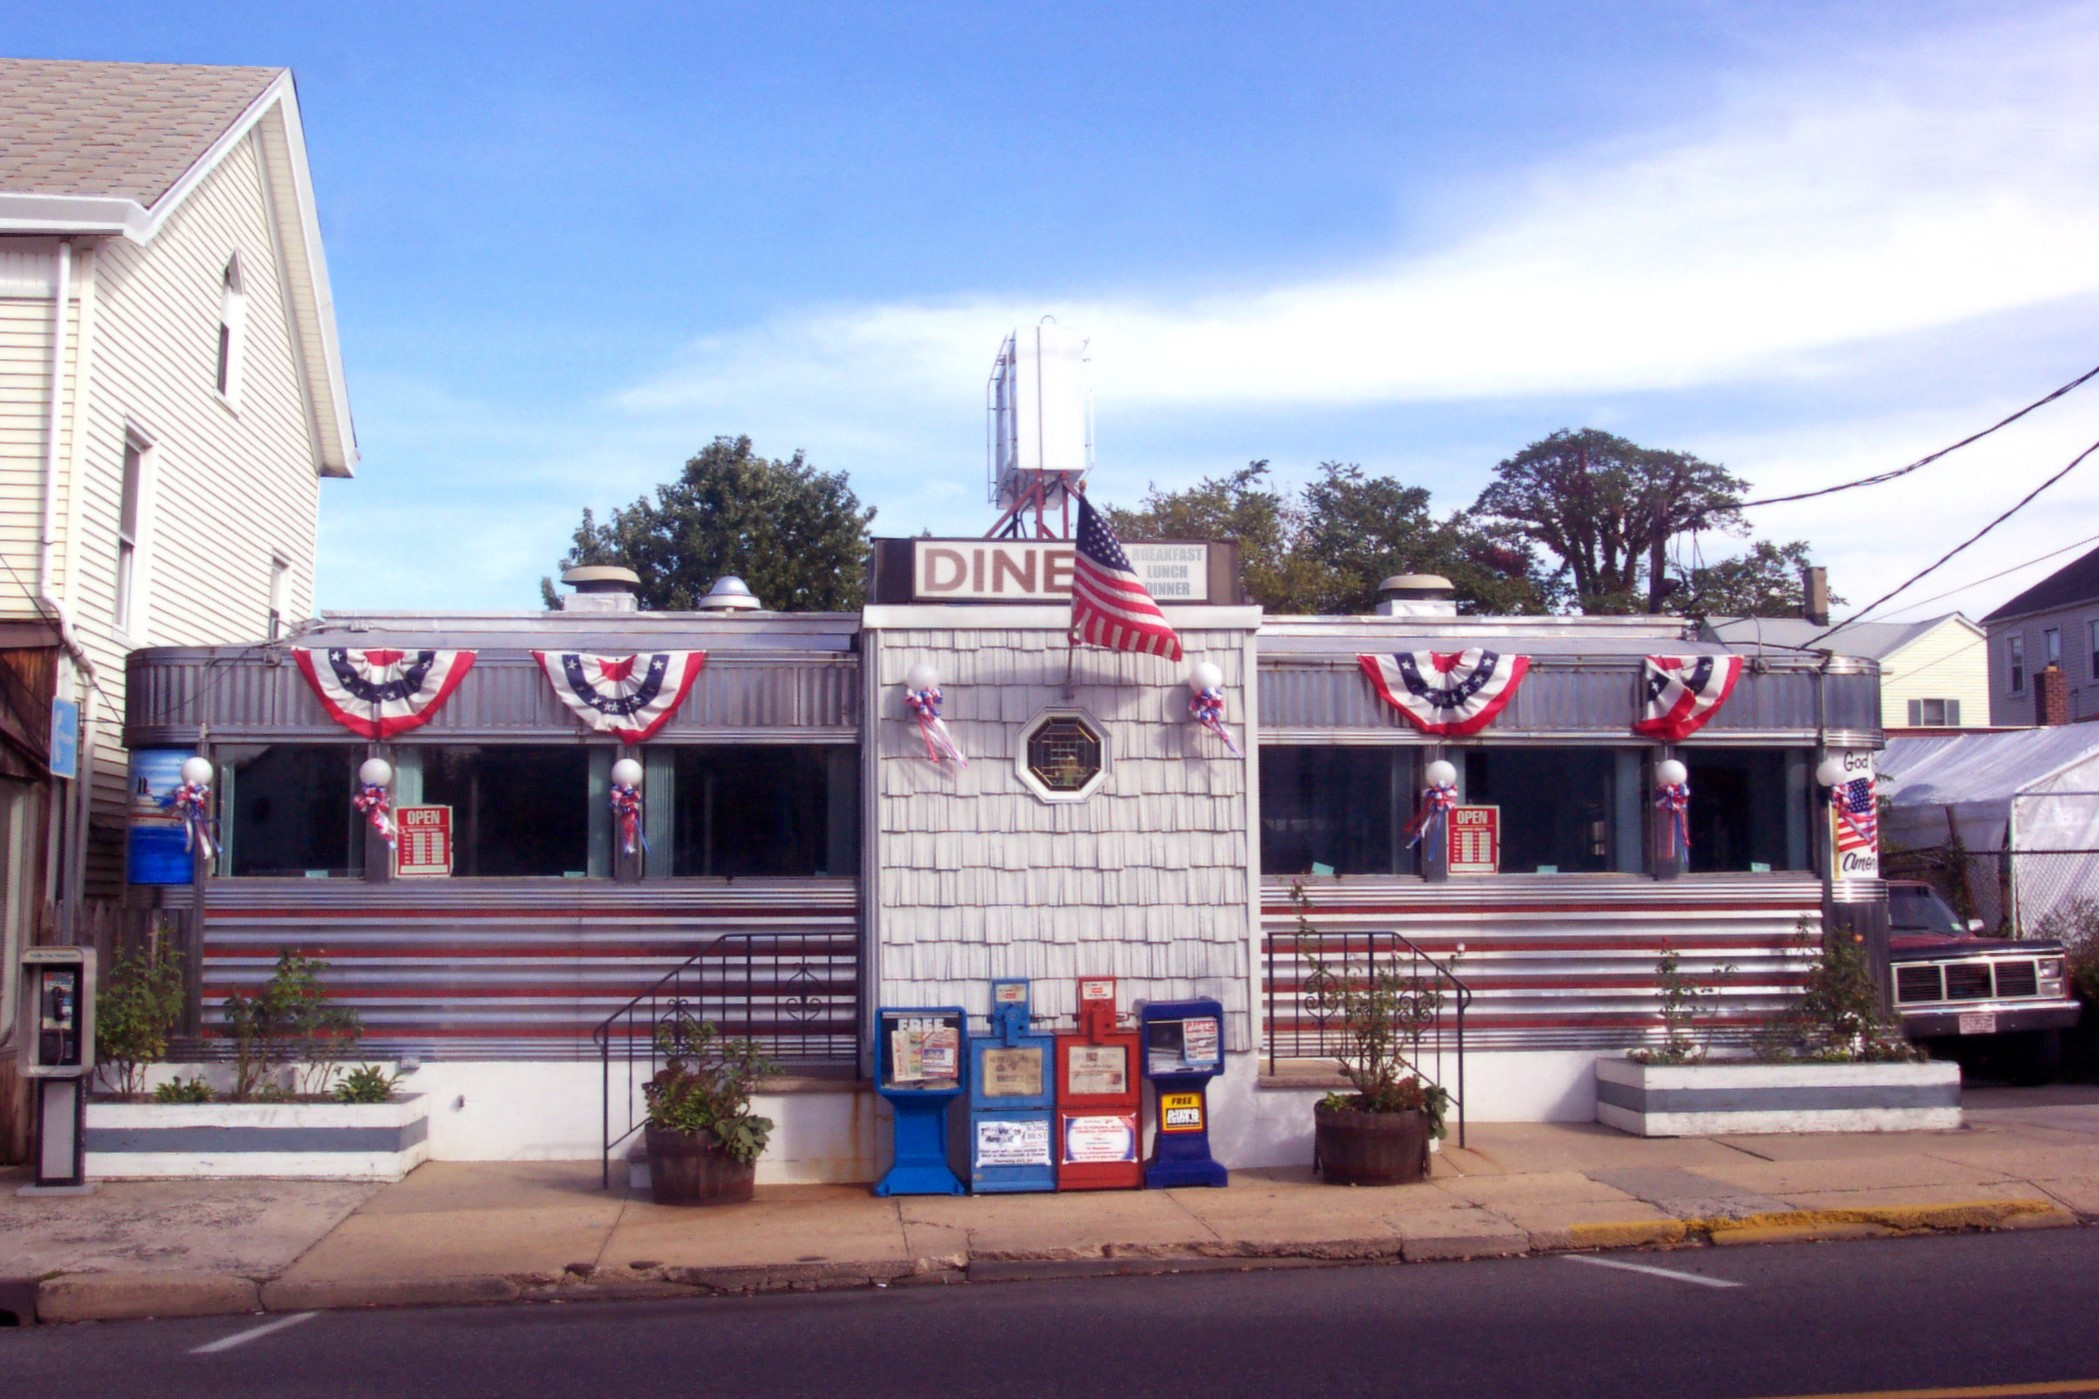 Outside image of diner decorated for 4th of July